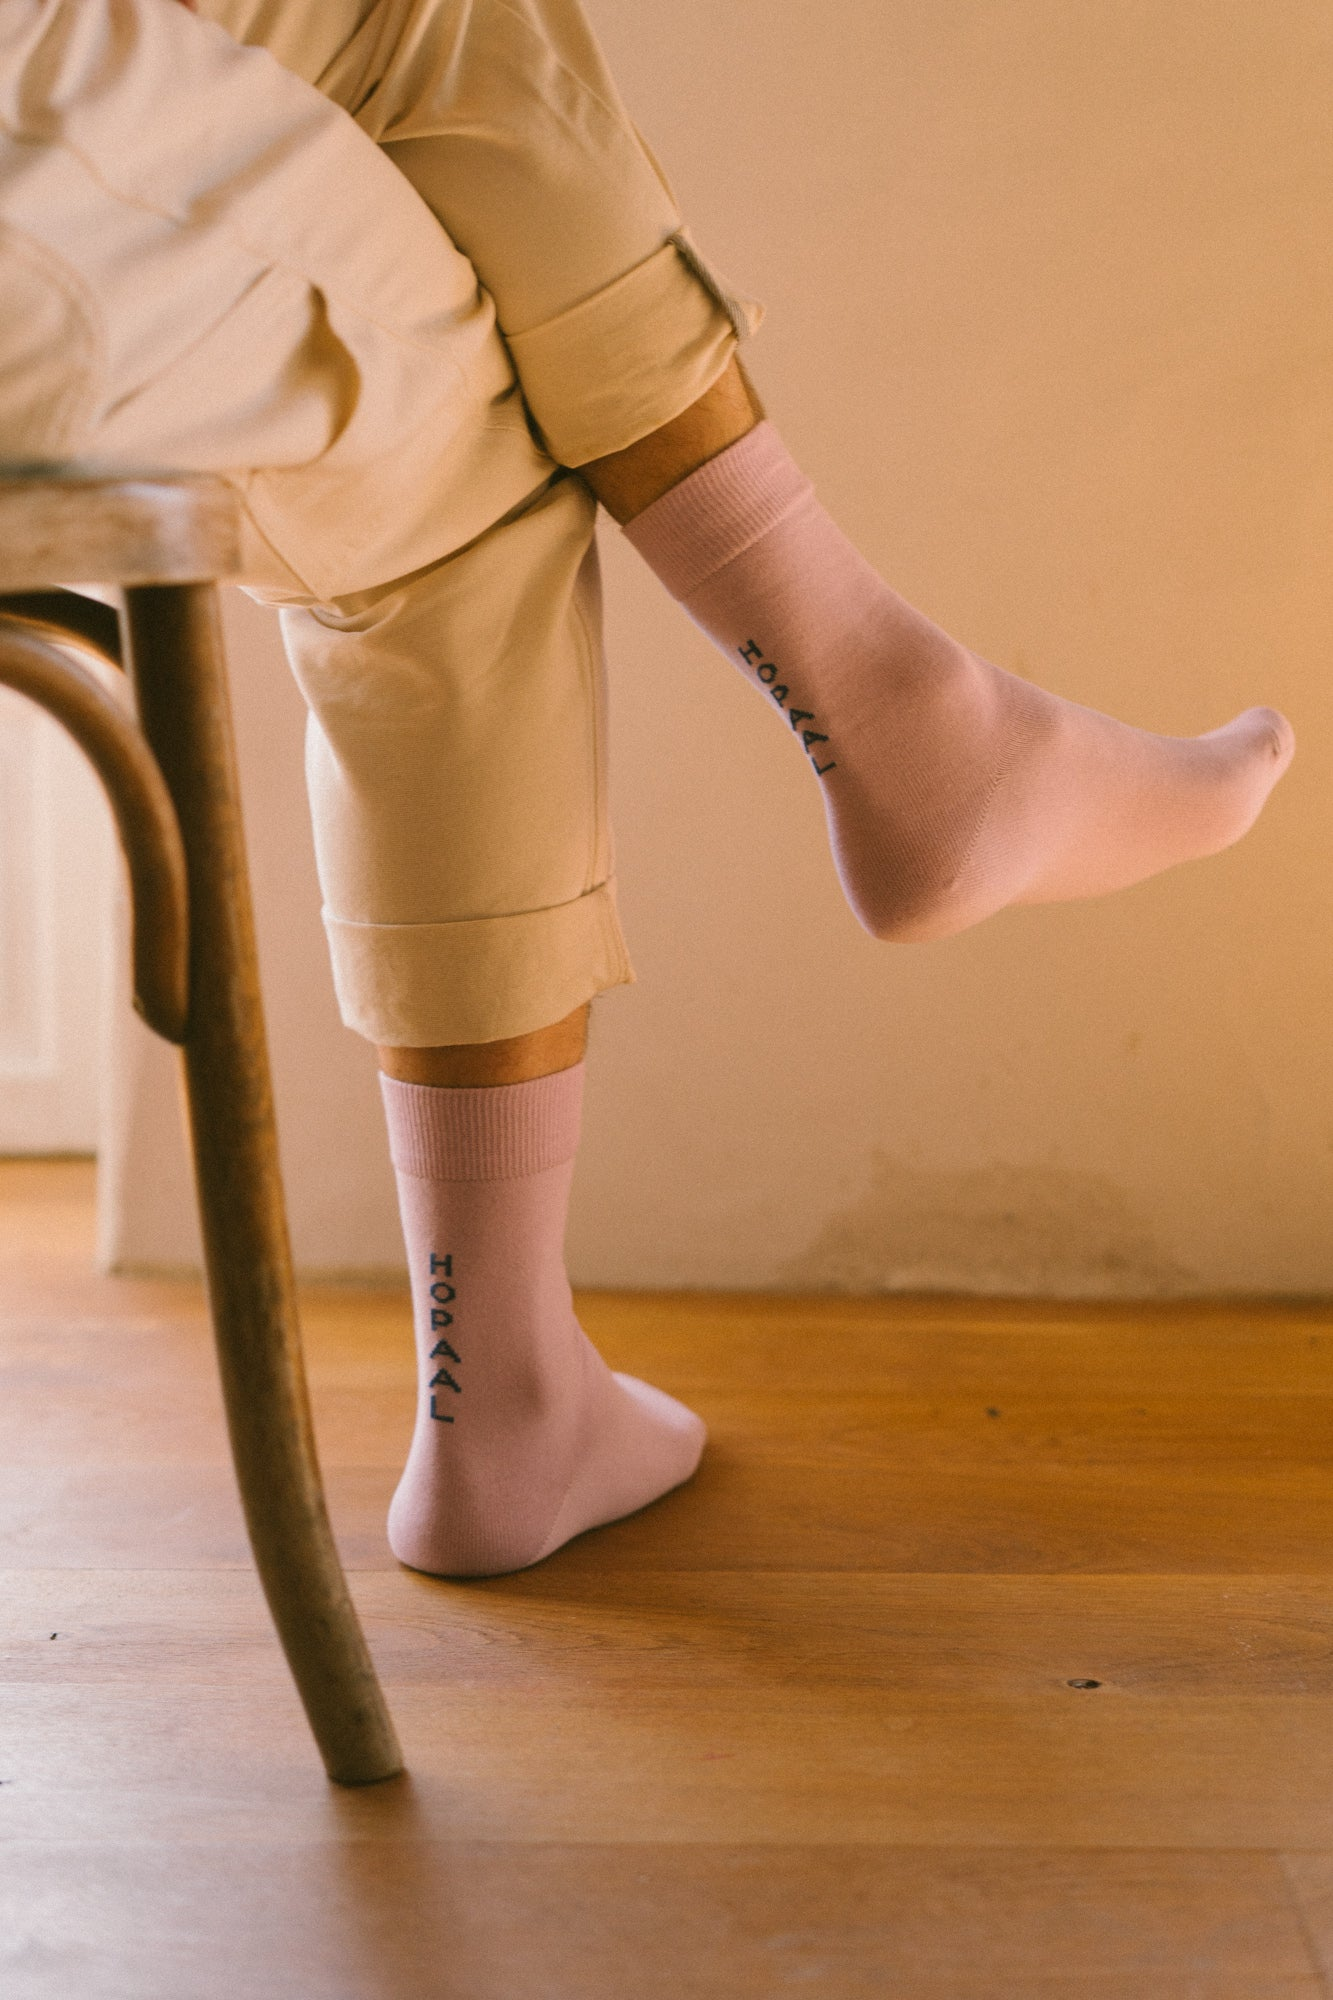 Raccourci Rose lilas - Chaussettes